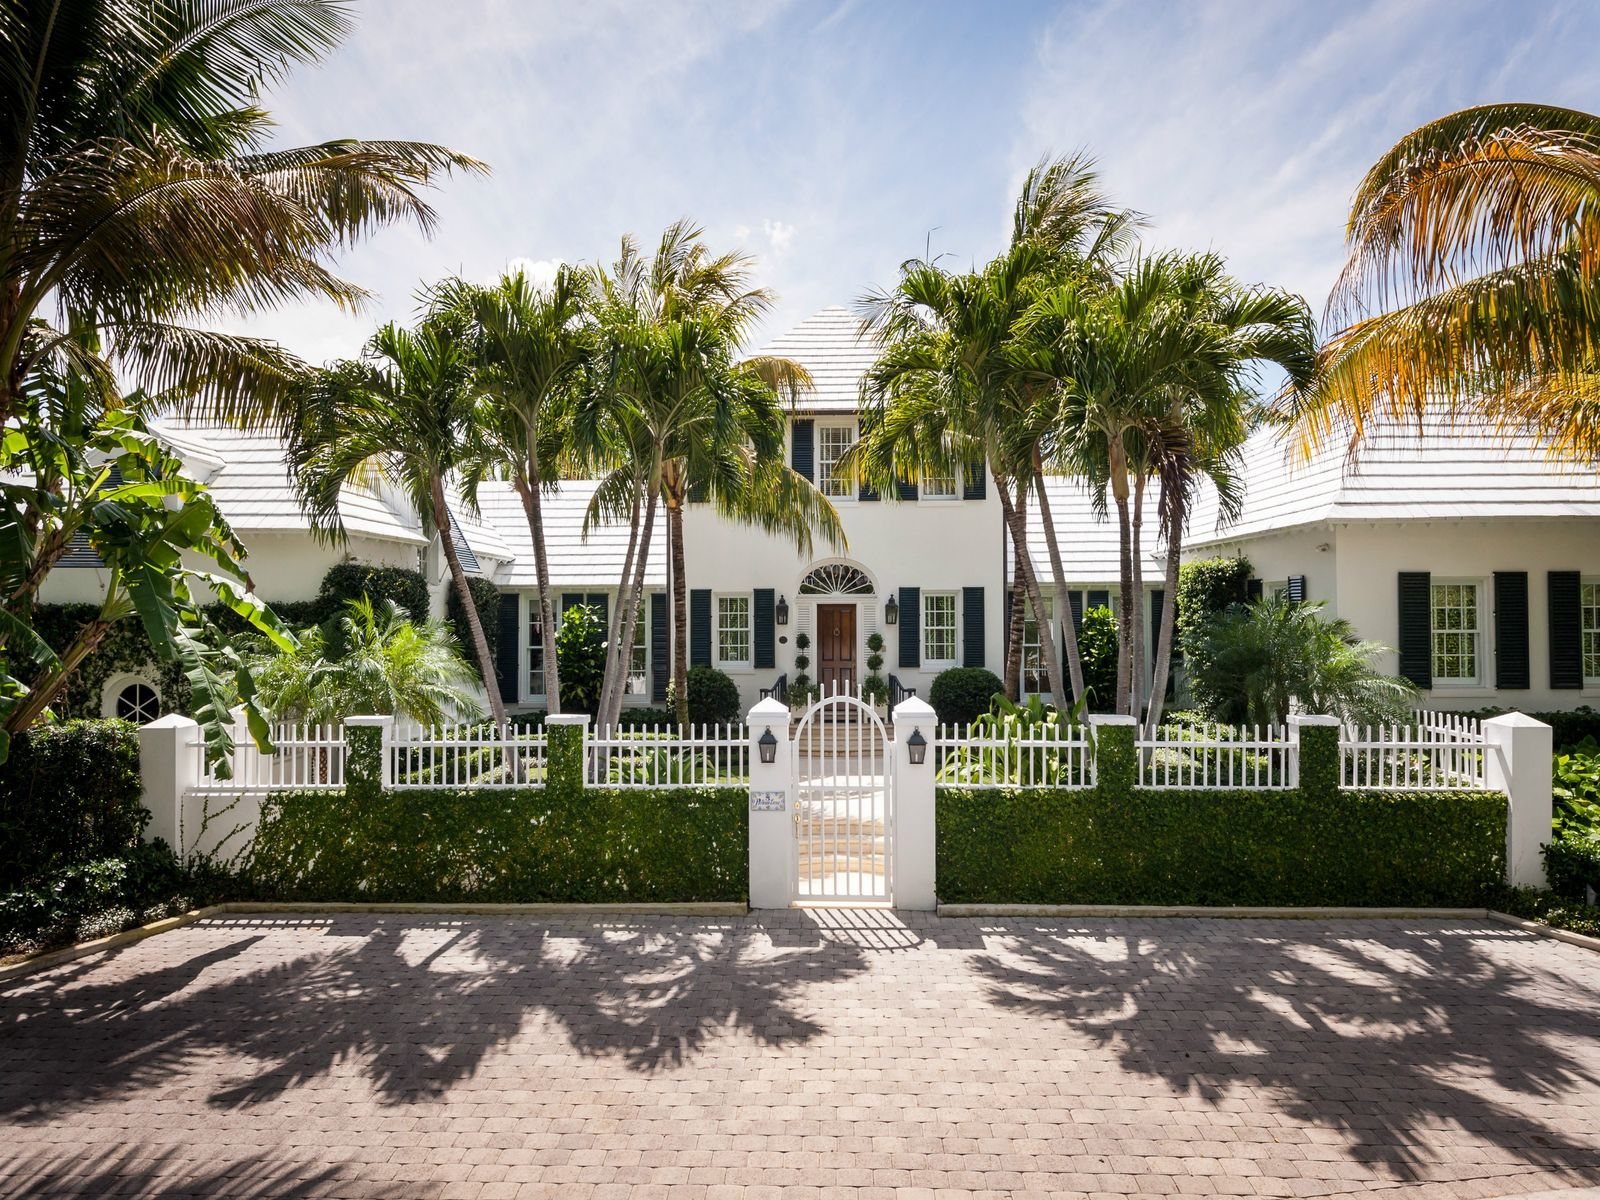 Estate Section Lakefront, Palm Beach FL Single Family Home - Palm Beach Real Estate